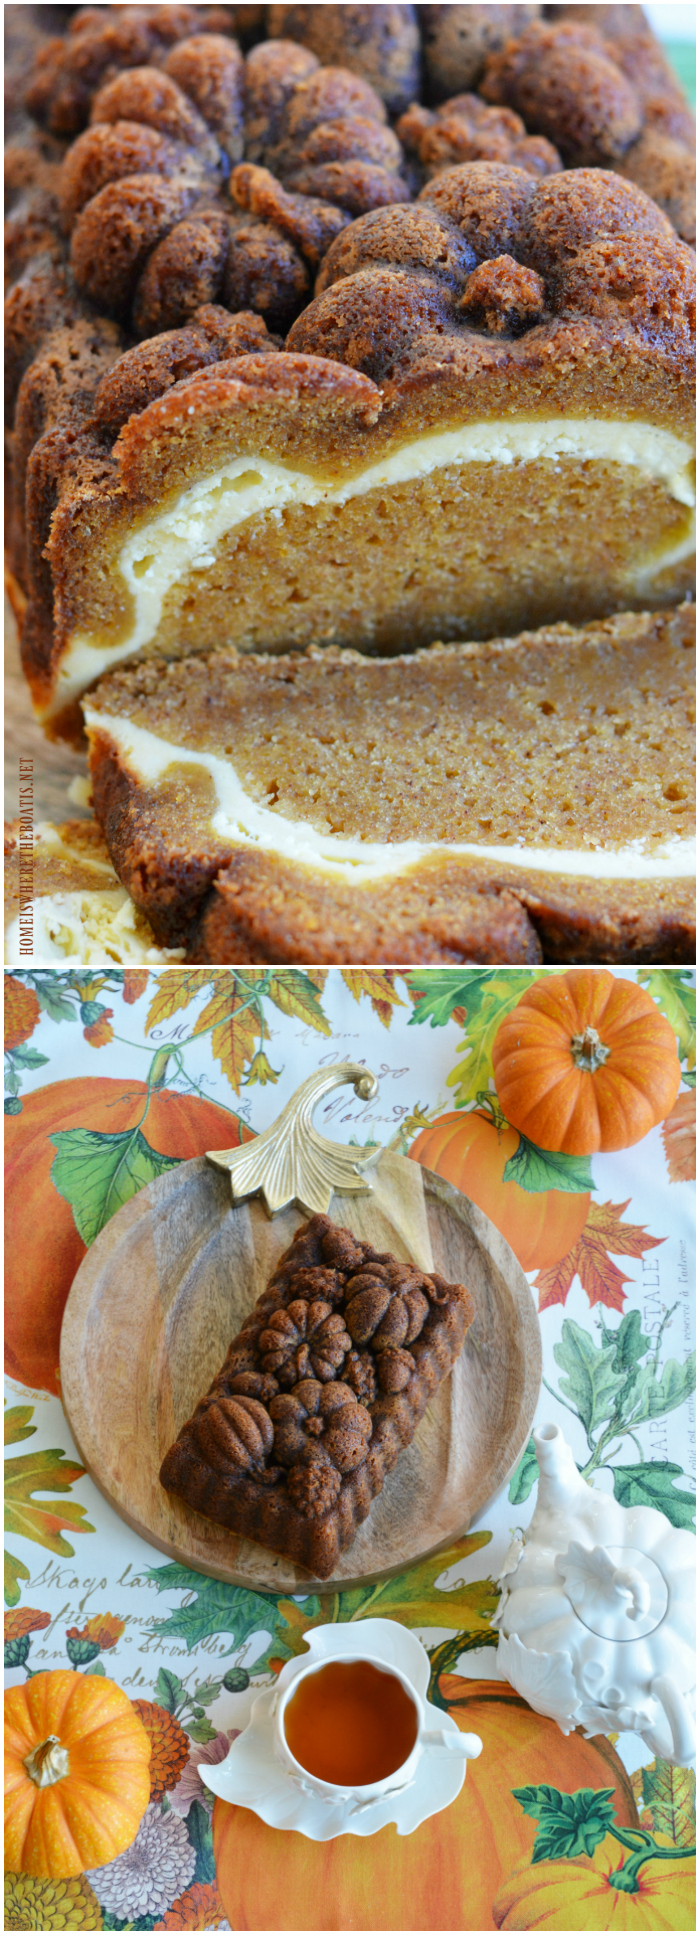 Treat your taste buds to Pumpkin Loaf with Cream Cheese Swirl! A moist, spiced pumpkin cake with a tangy cream cheese layer, perfect for a fall morning, Thanksgiving weekend, or as afternoon treat with a cuppa!   ©homeiswheretheboatis.net #pumpkinspice #cake #Thanksgiving #fall #dessert #tea